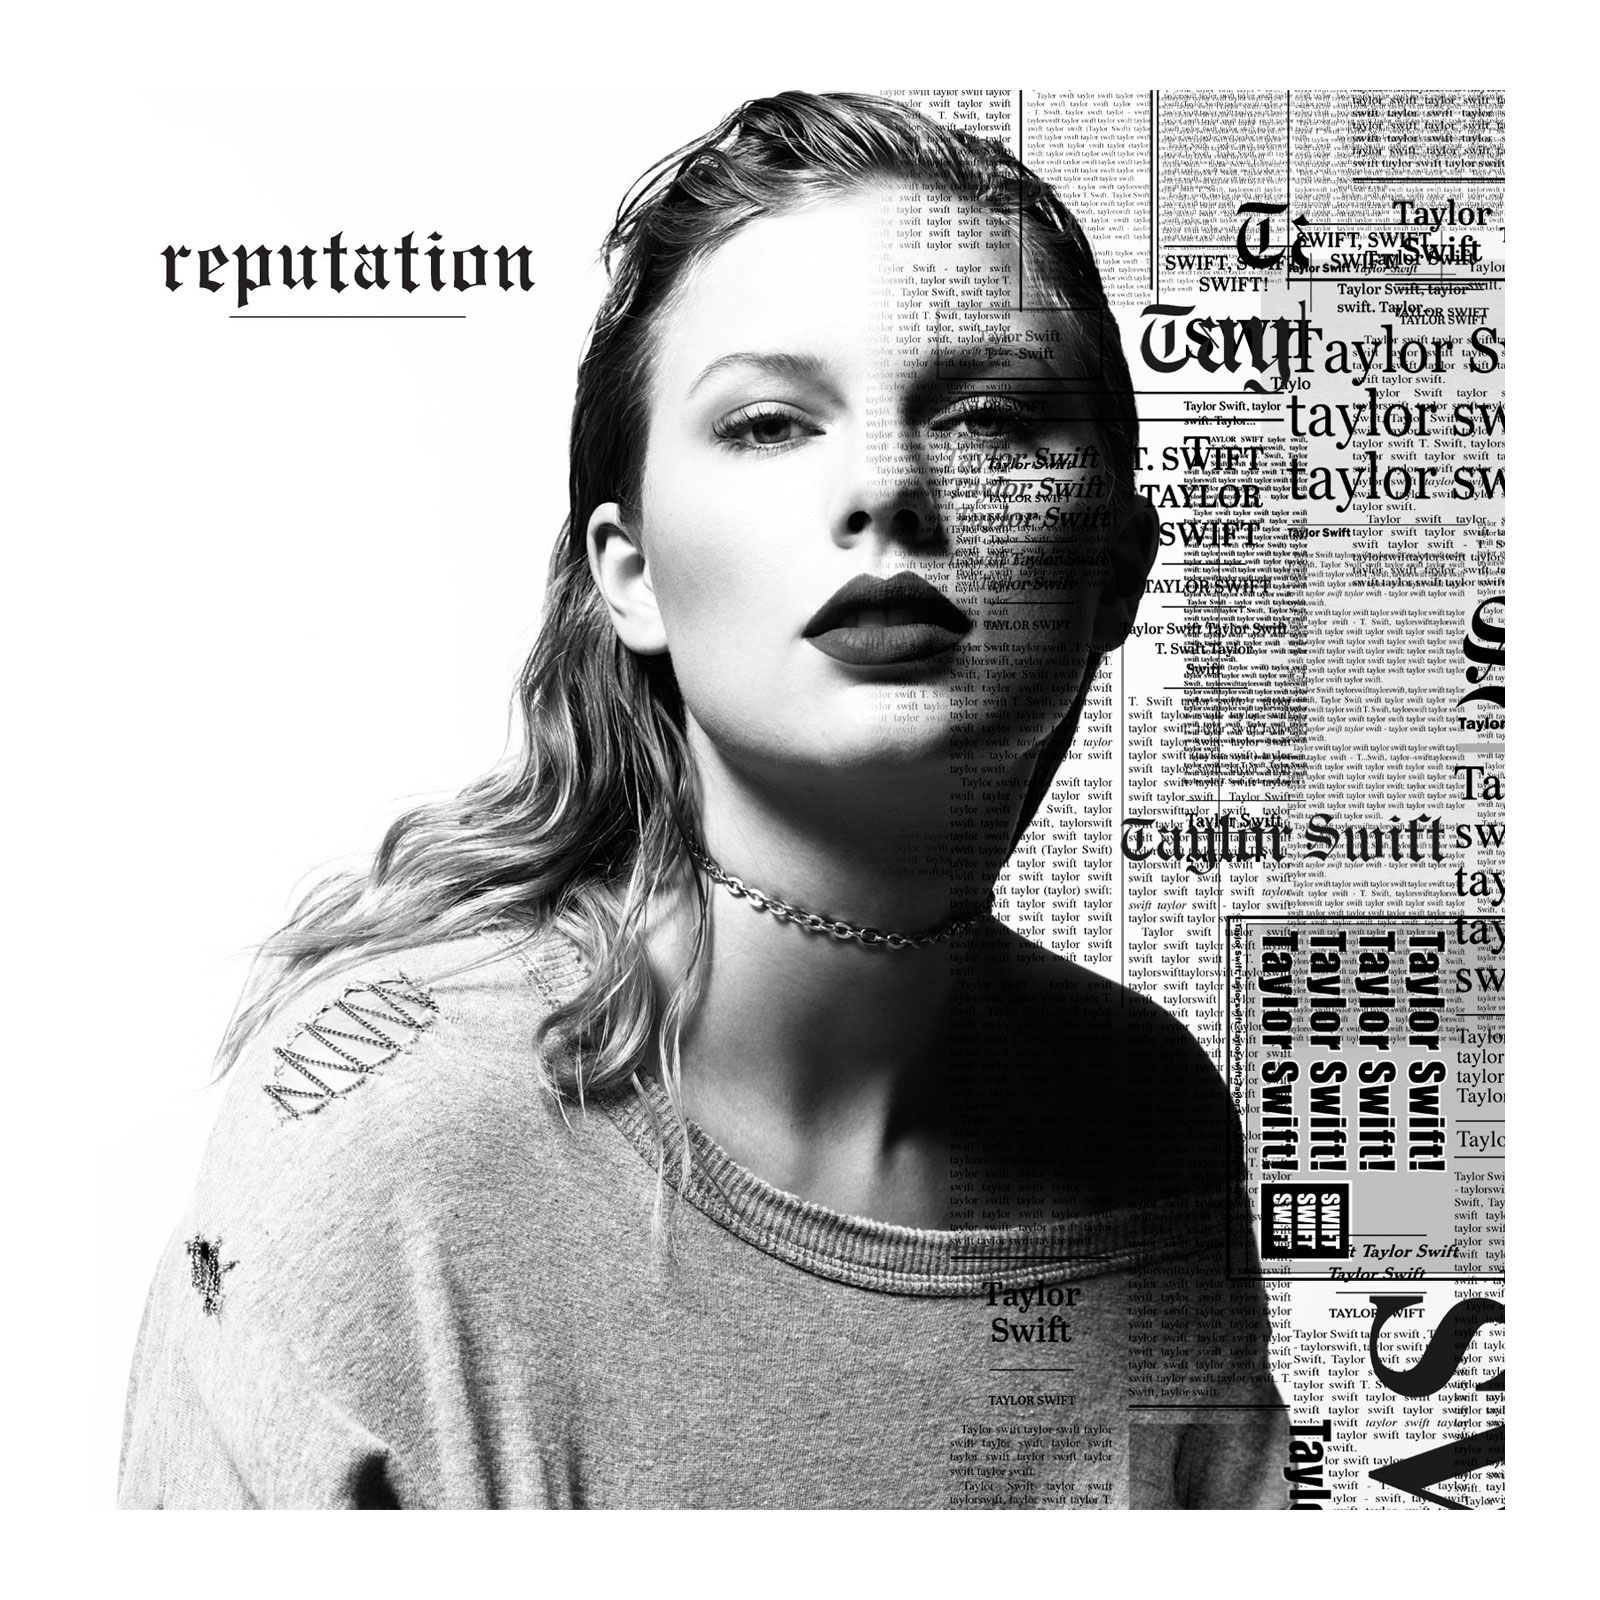 Taylor Swift Has Already Sold Over a Million Copies of 'Reputation'